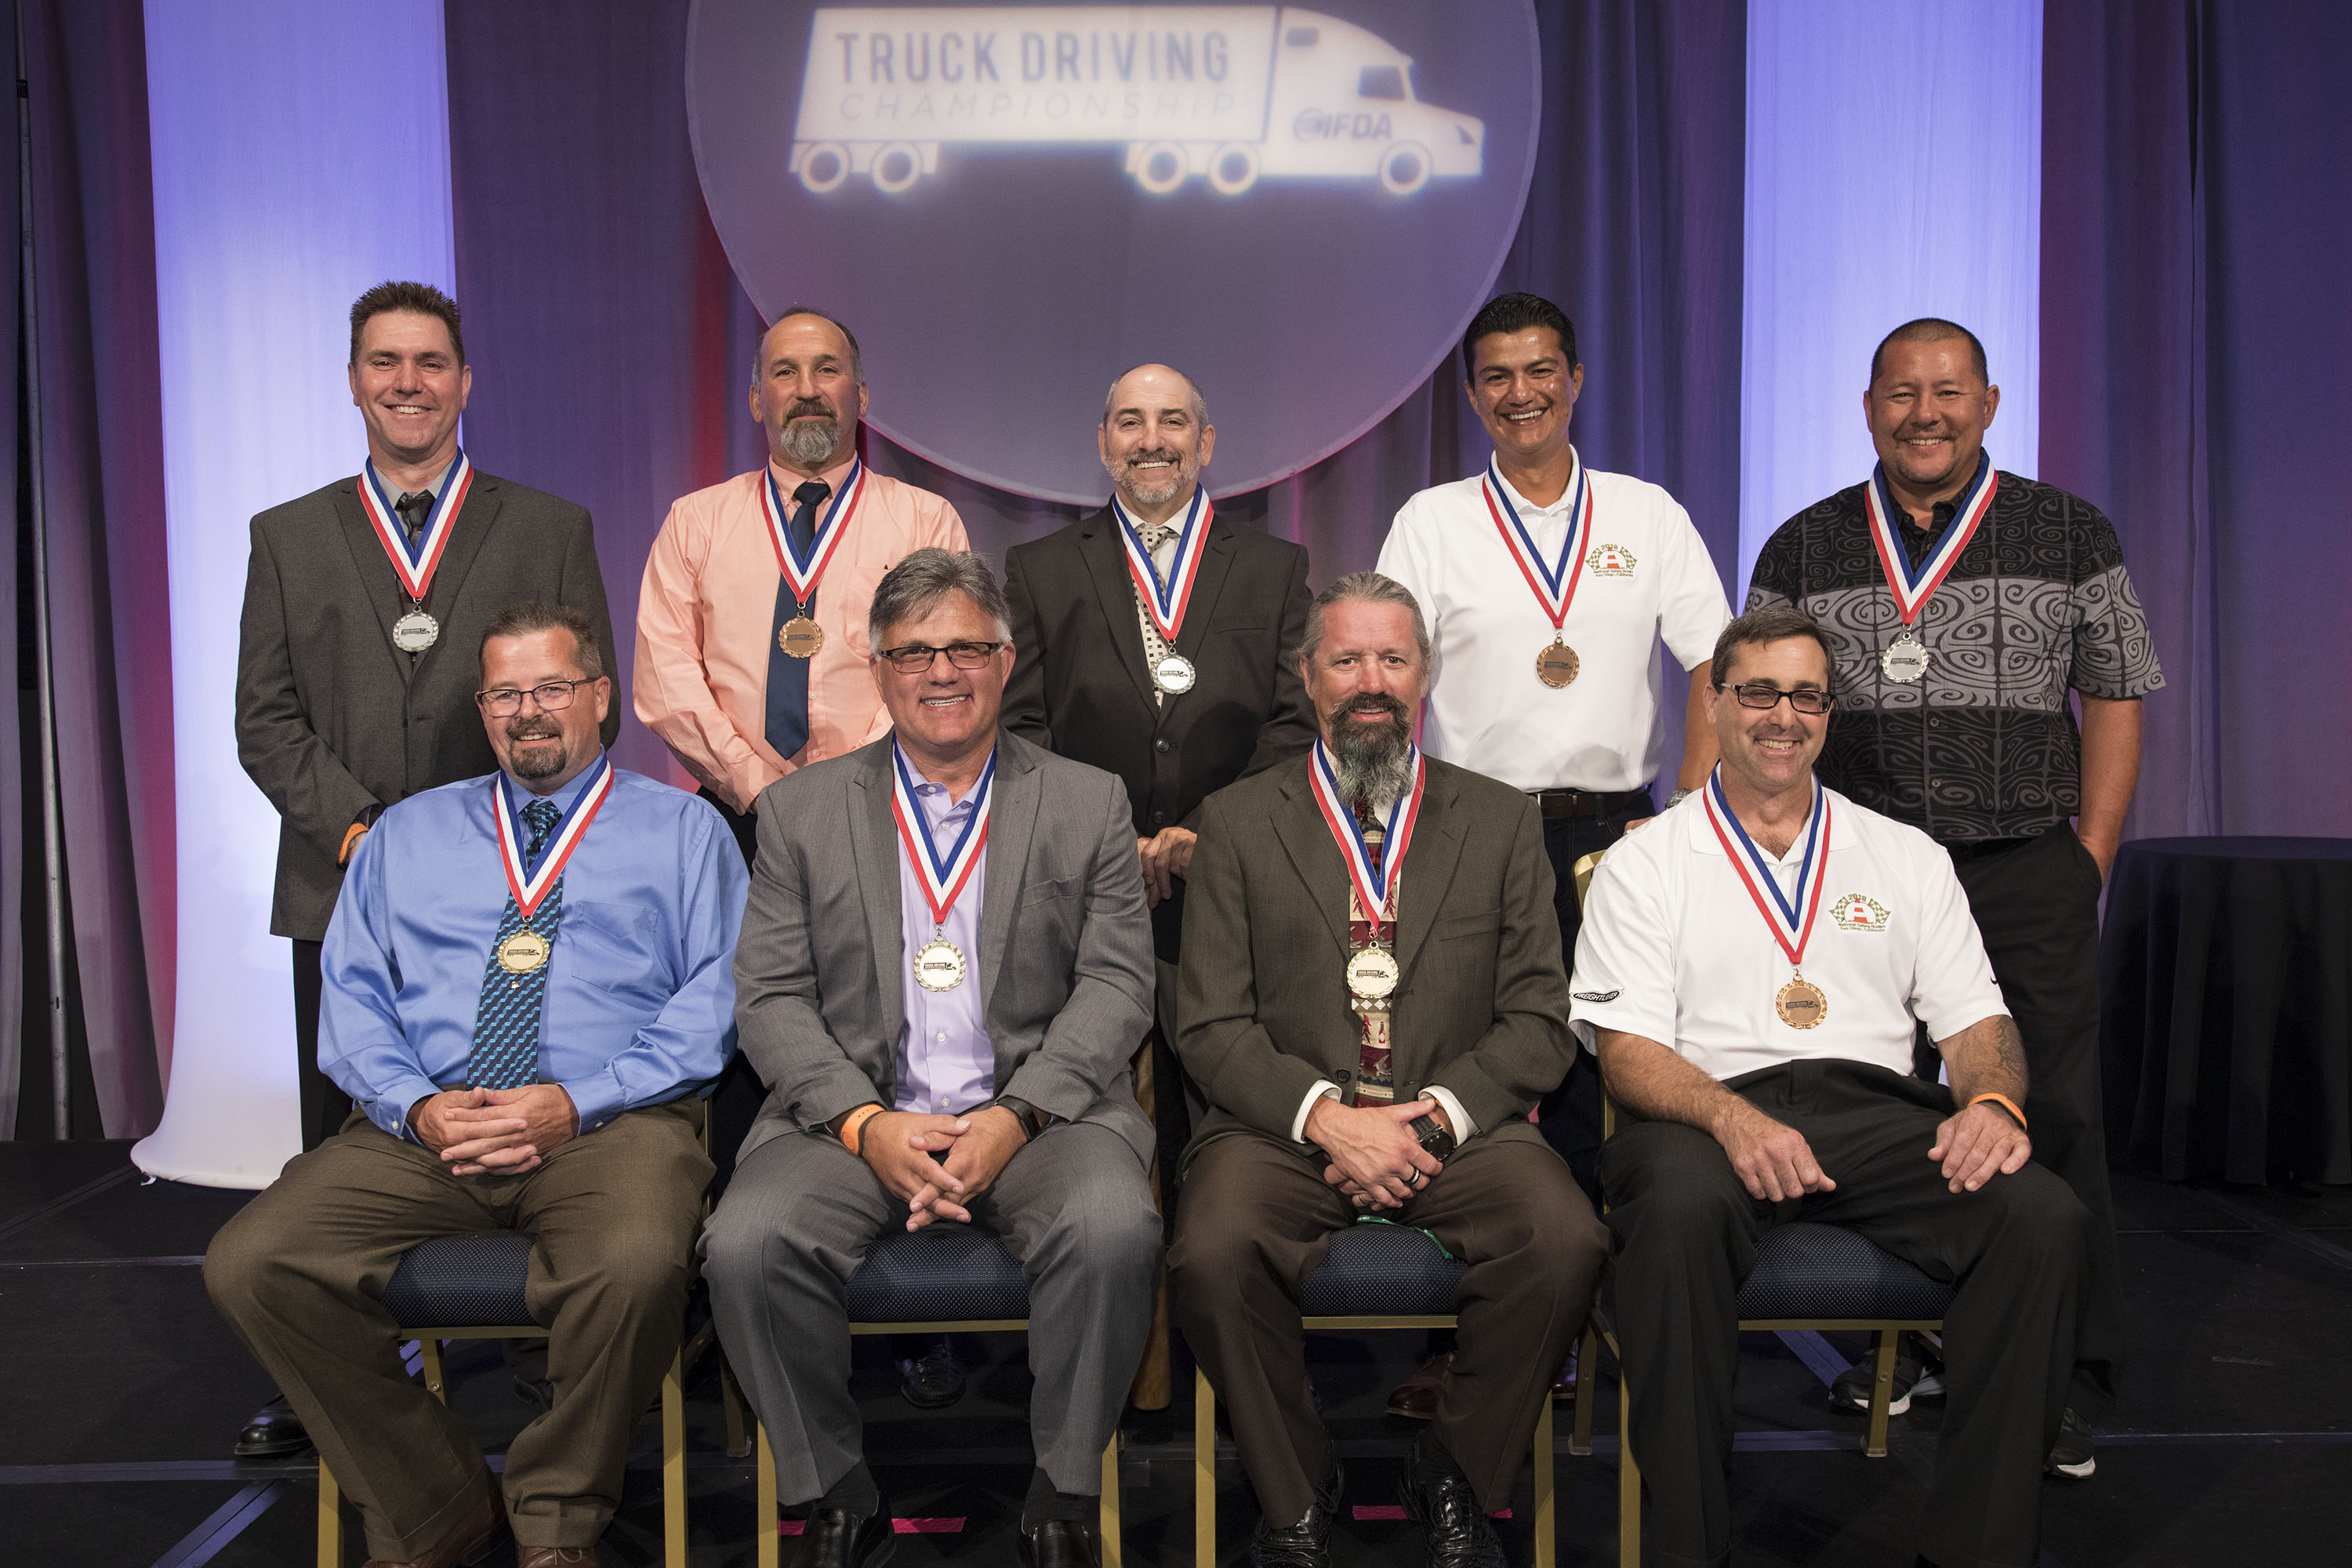 IFDA Announces Winners of 2018 National Truck Driving Championship